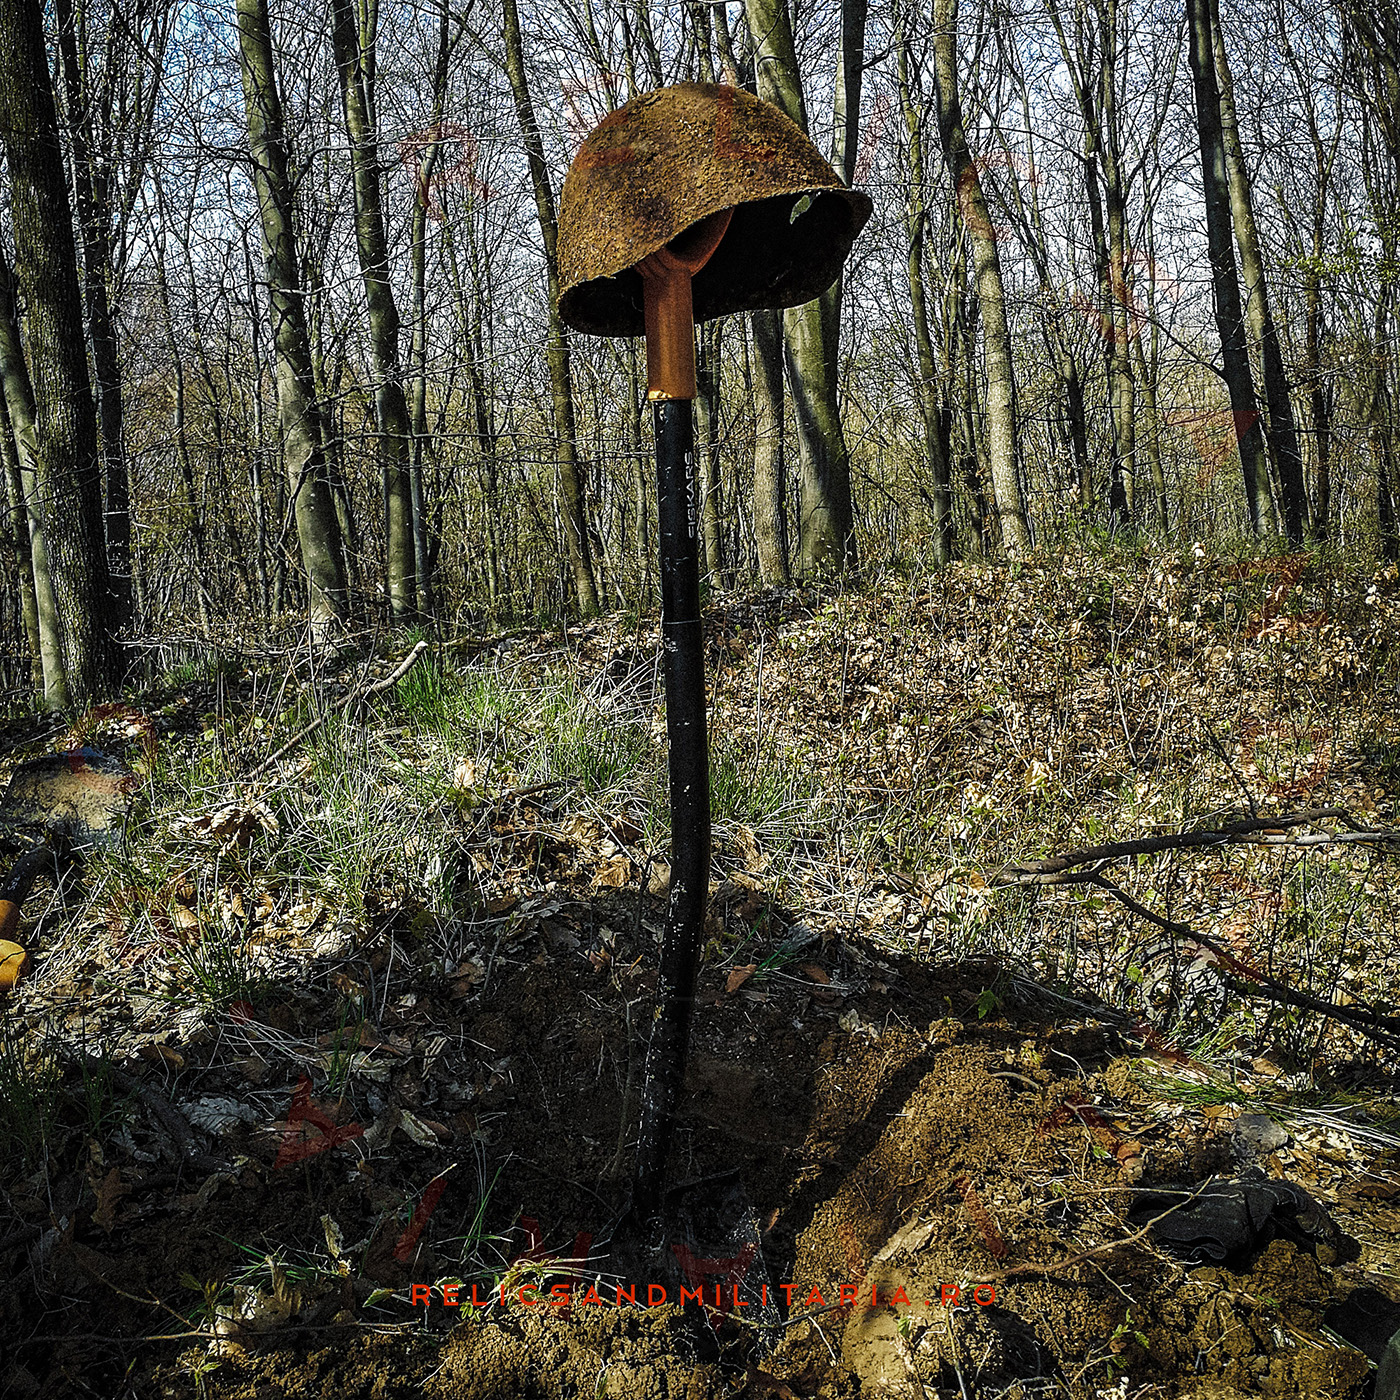 SSh-40 Red Army helmet found in Romania